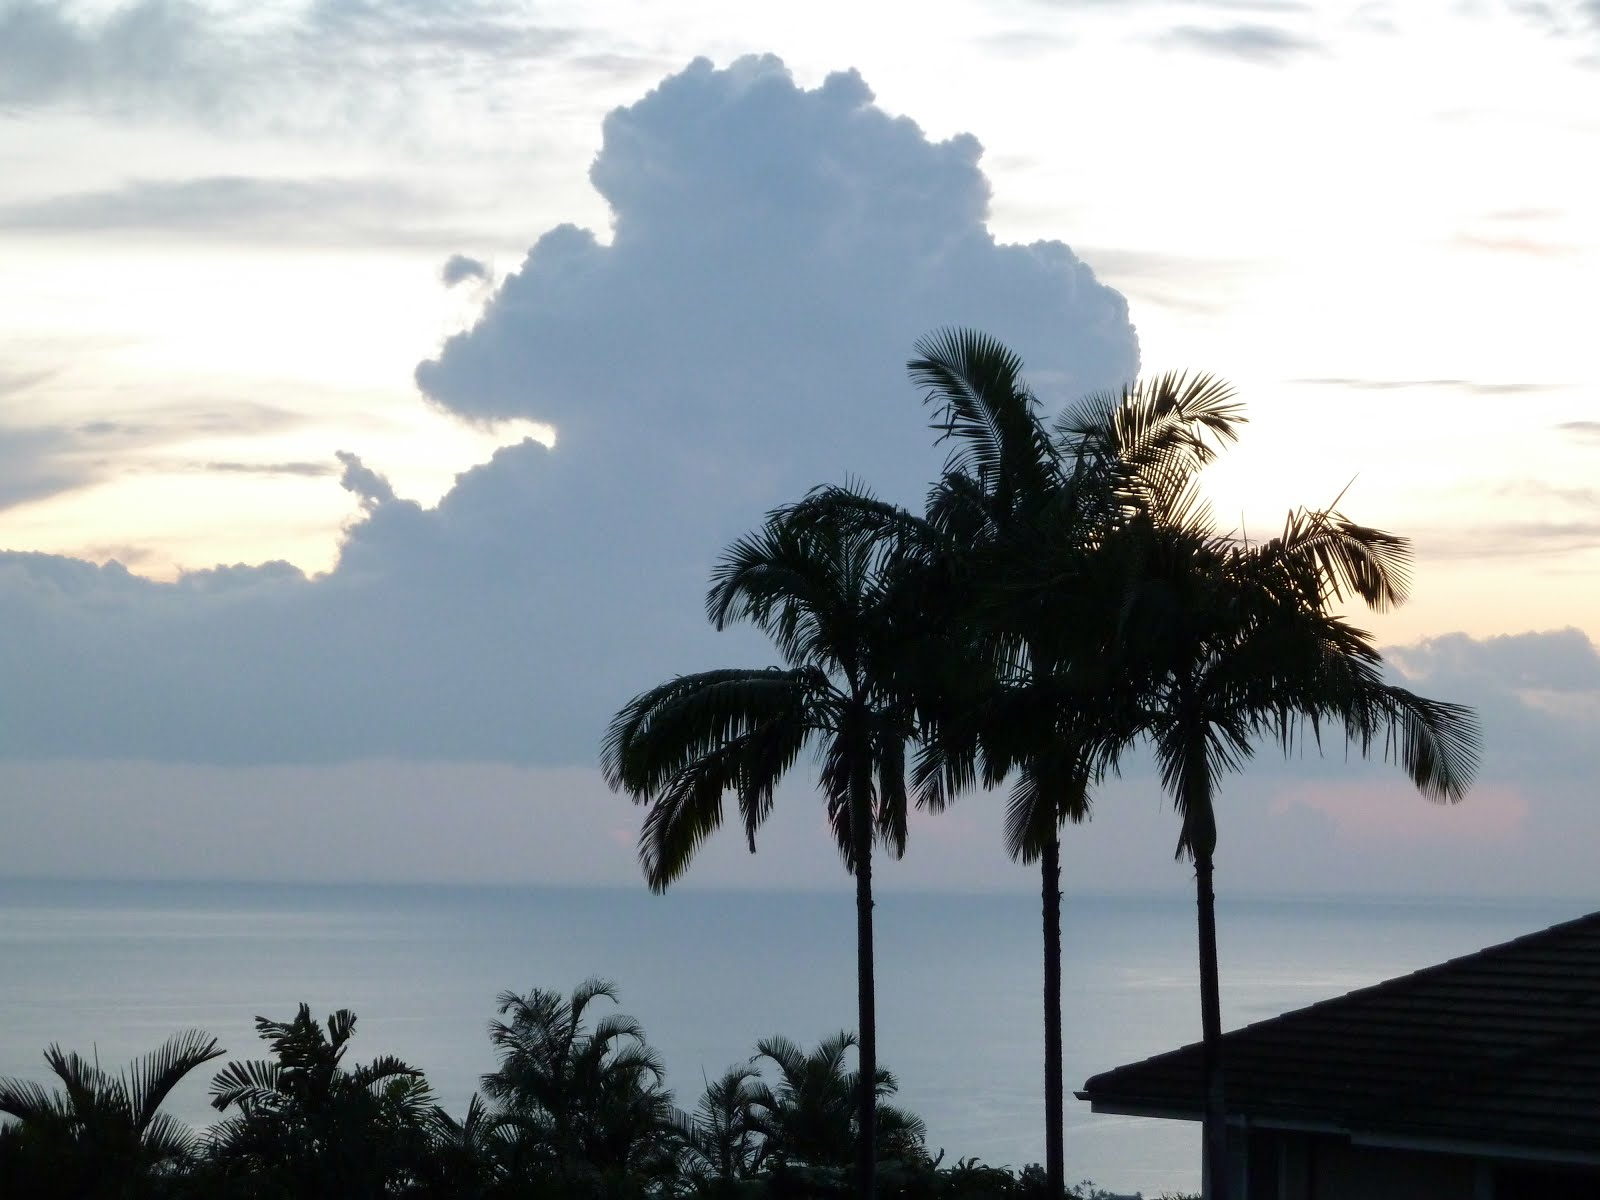 Matching clouds and palm trees, Kailua-Kona